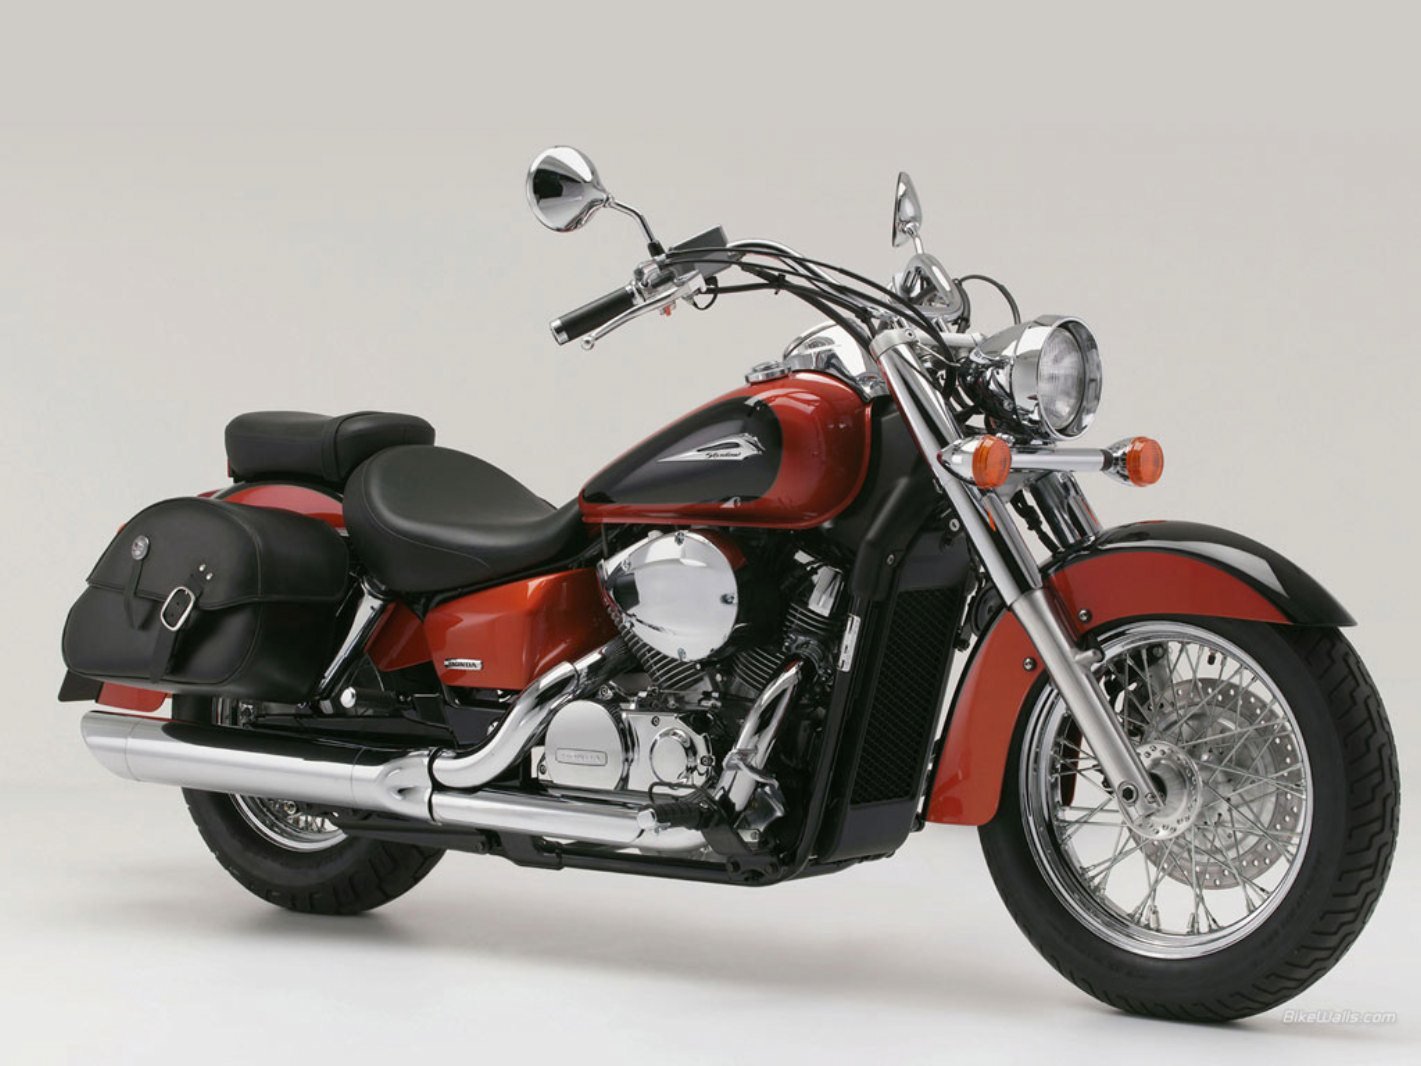 2008 honda shadow aero 750 review